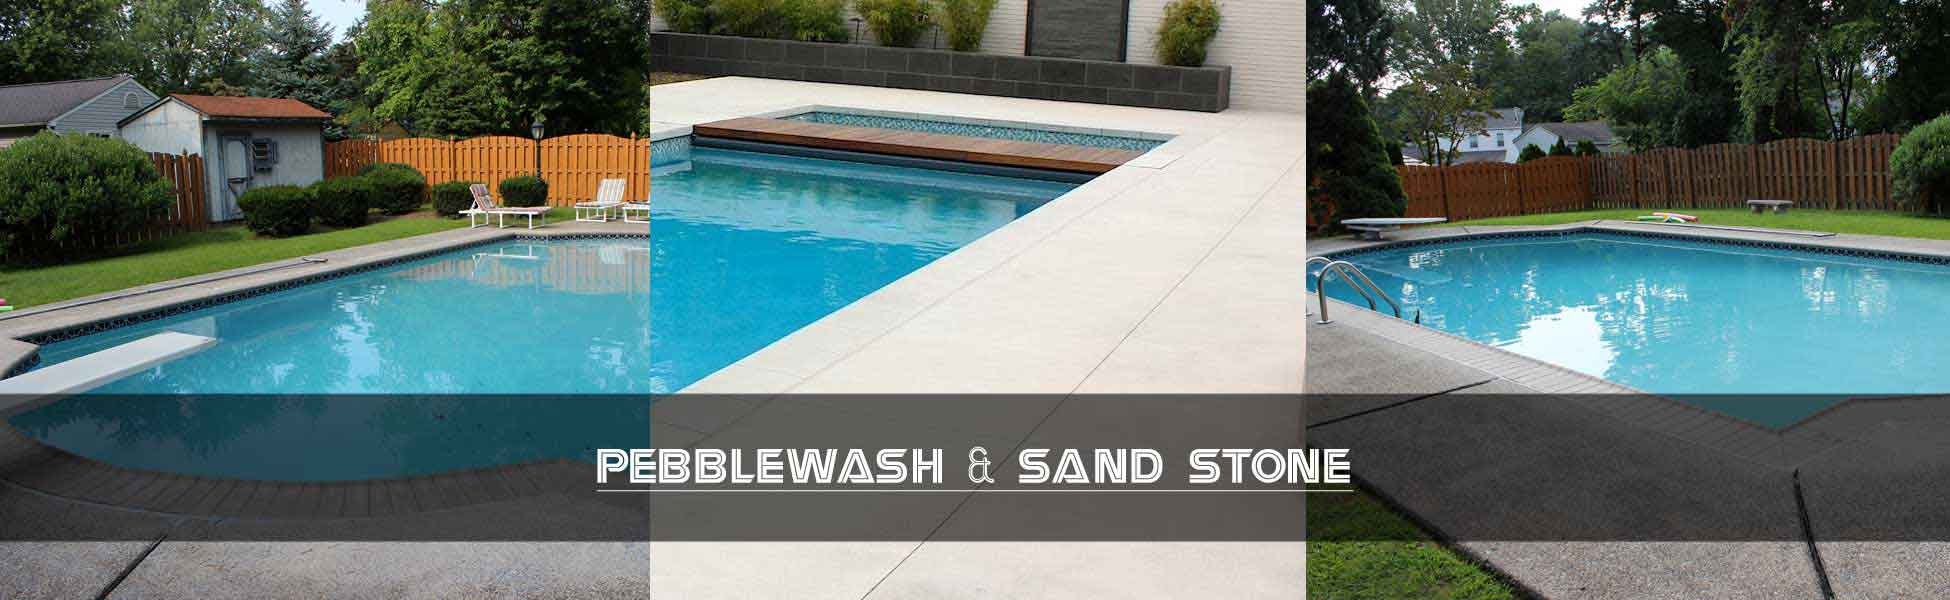 Pebblewash And Sand Stone